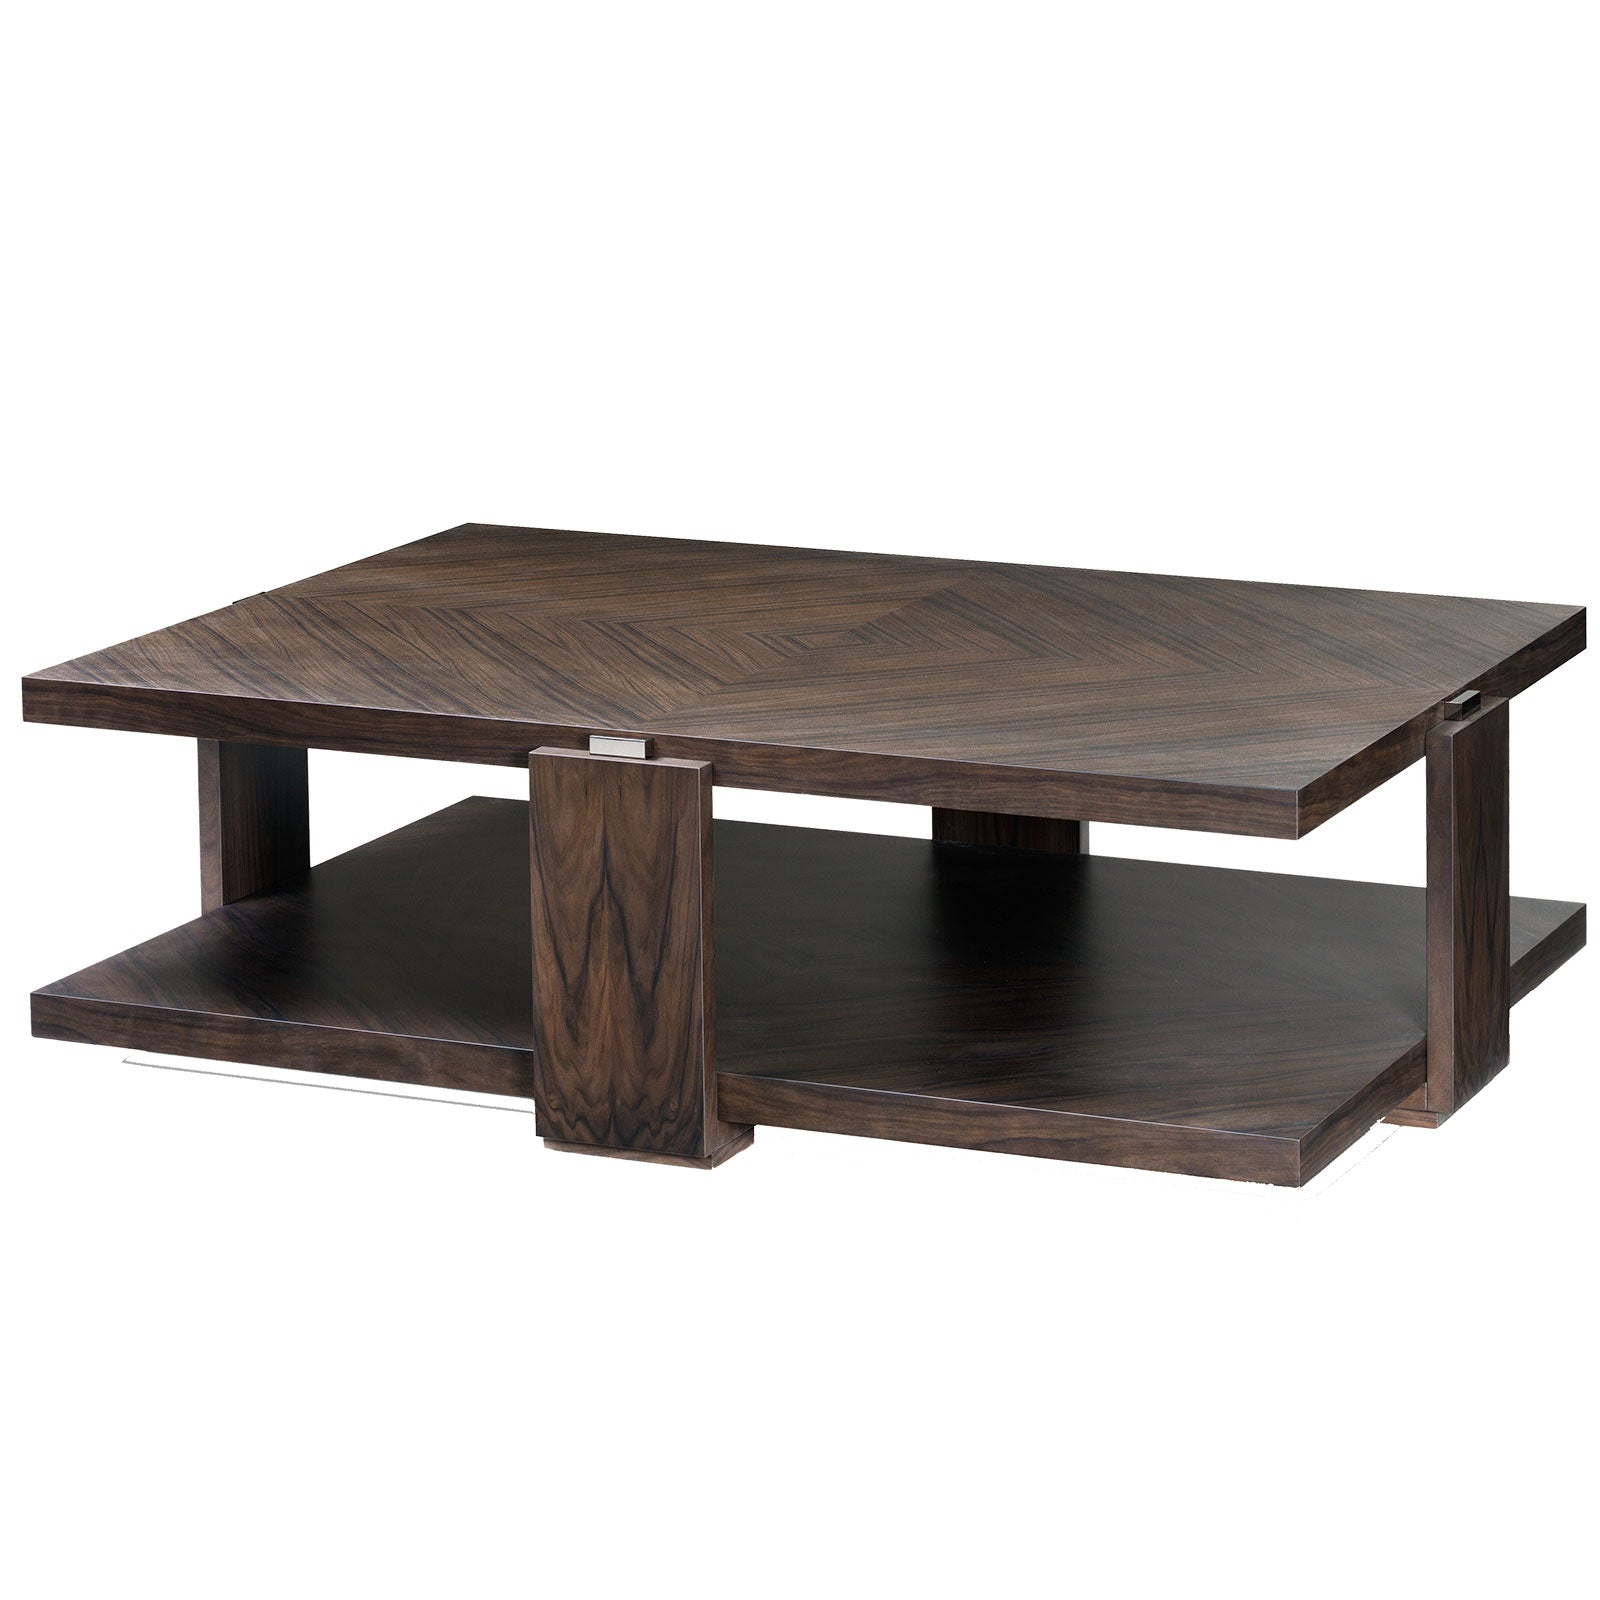 Dante Coffee Table - Smania